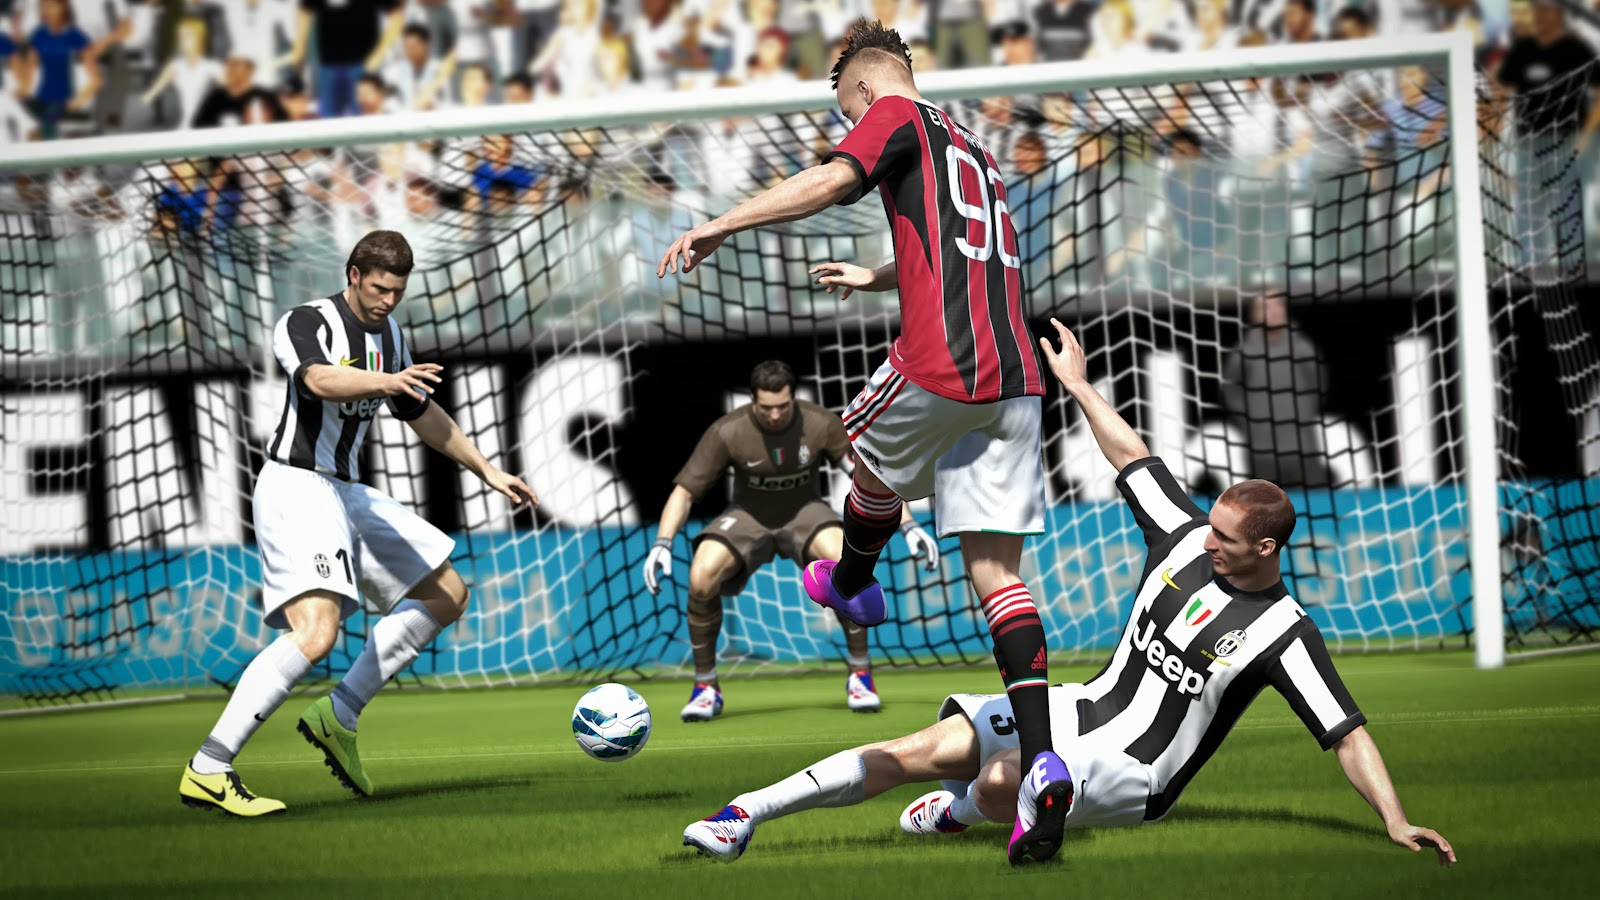 fifa 14 pc free full download no password no survey